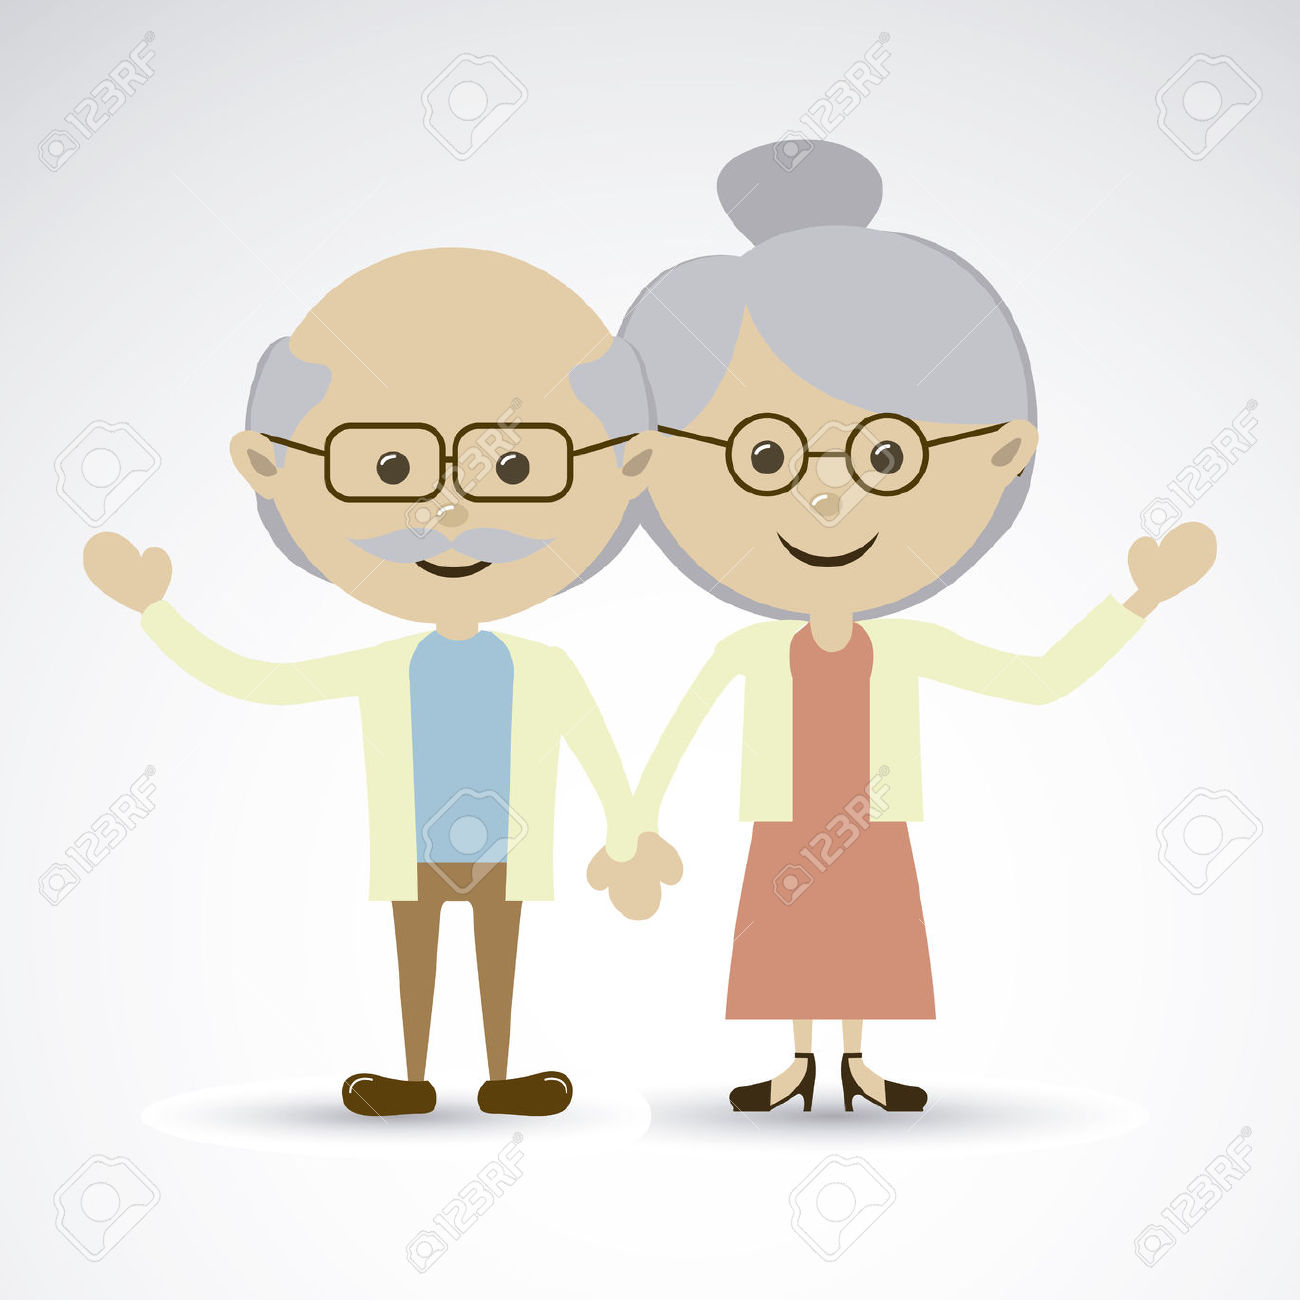 Grandparents Clipart | Clipart Panda - Free Clipart Images